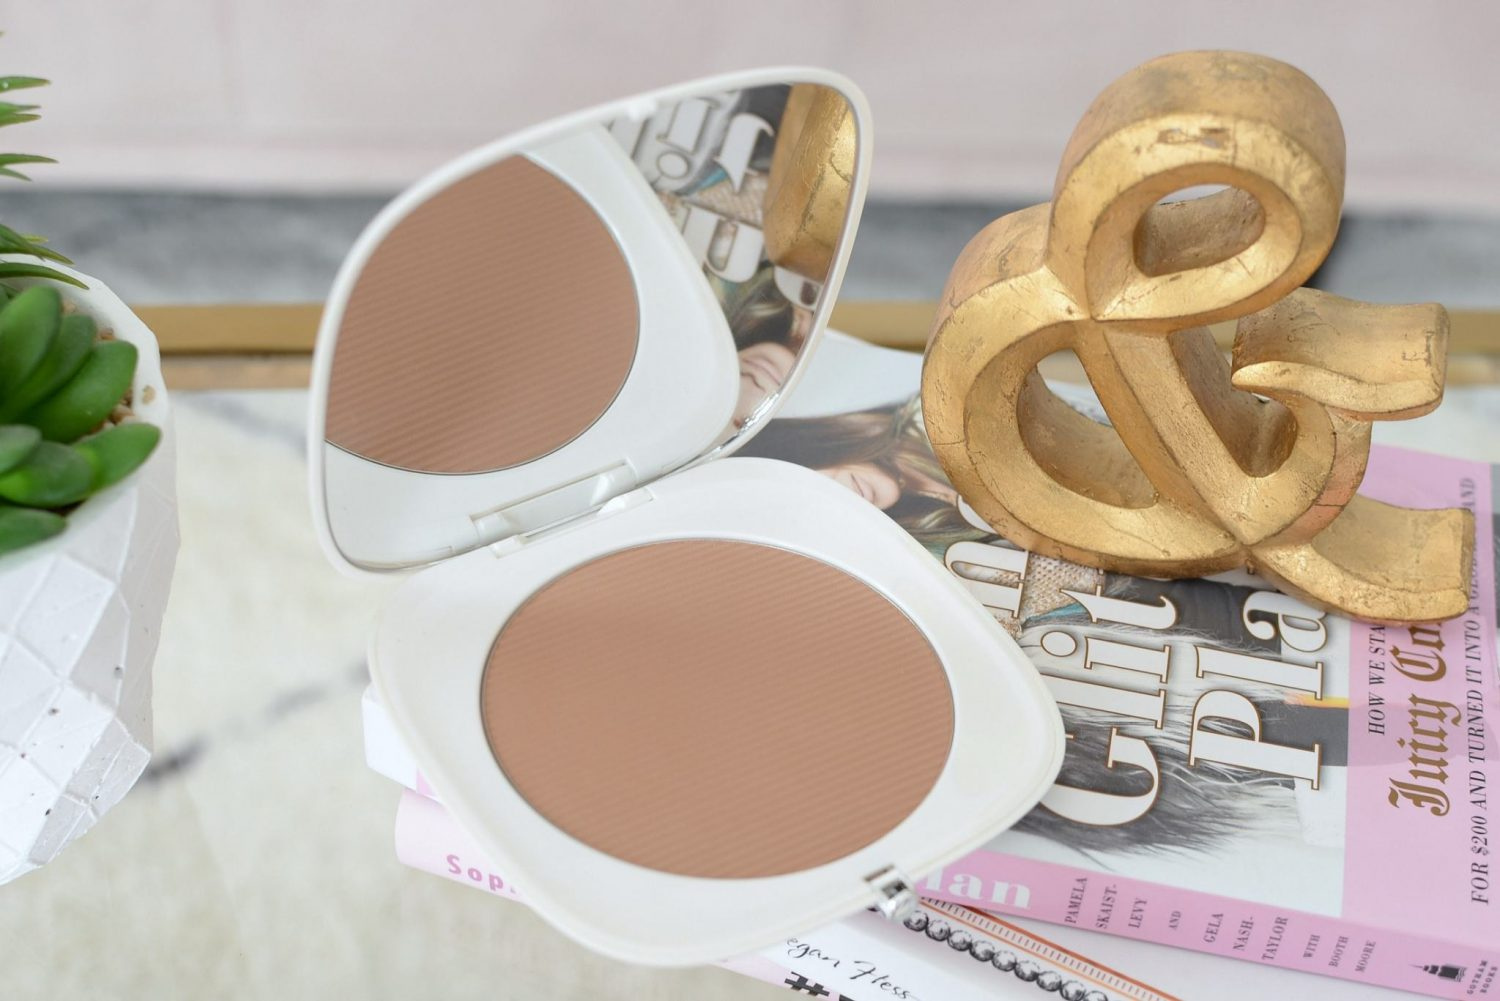 Marc Jacobs O!Mega Bronze Coconut Perfect Tab Bronzer in Tan-Tastic!